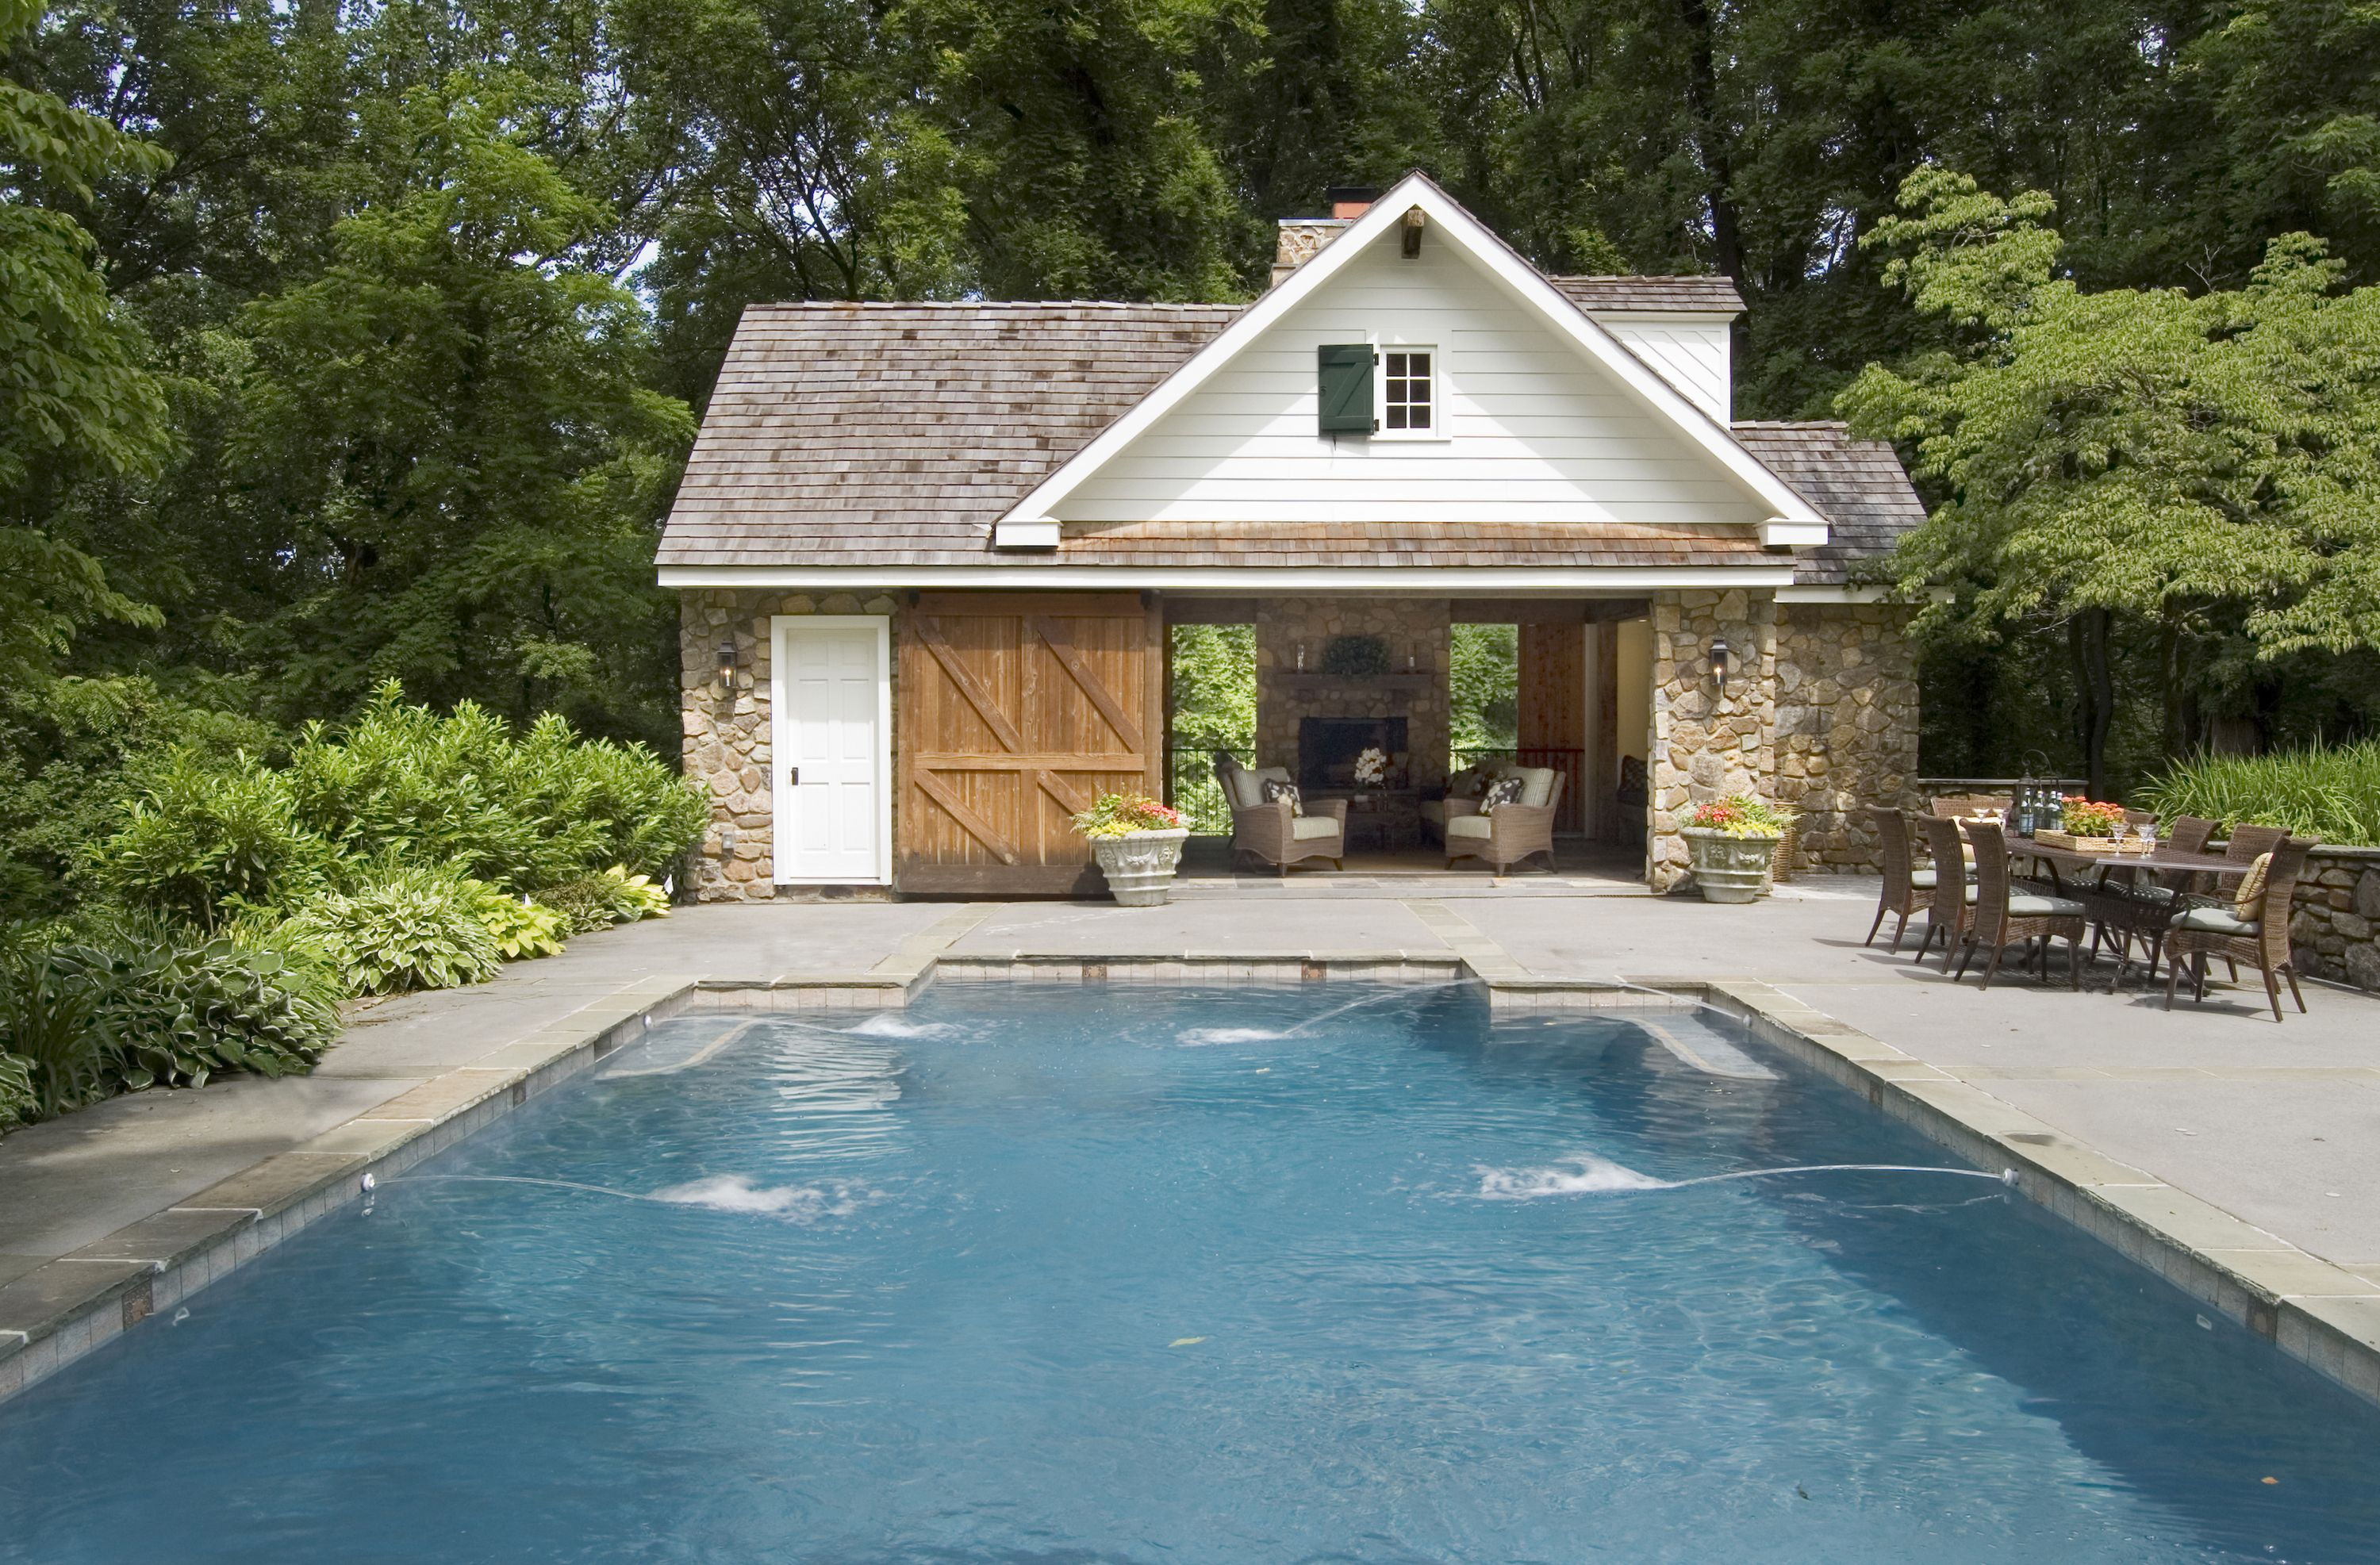 Outdoor House Pools pool house modeled after a 9th-century colonial farmhouse- look at